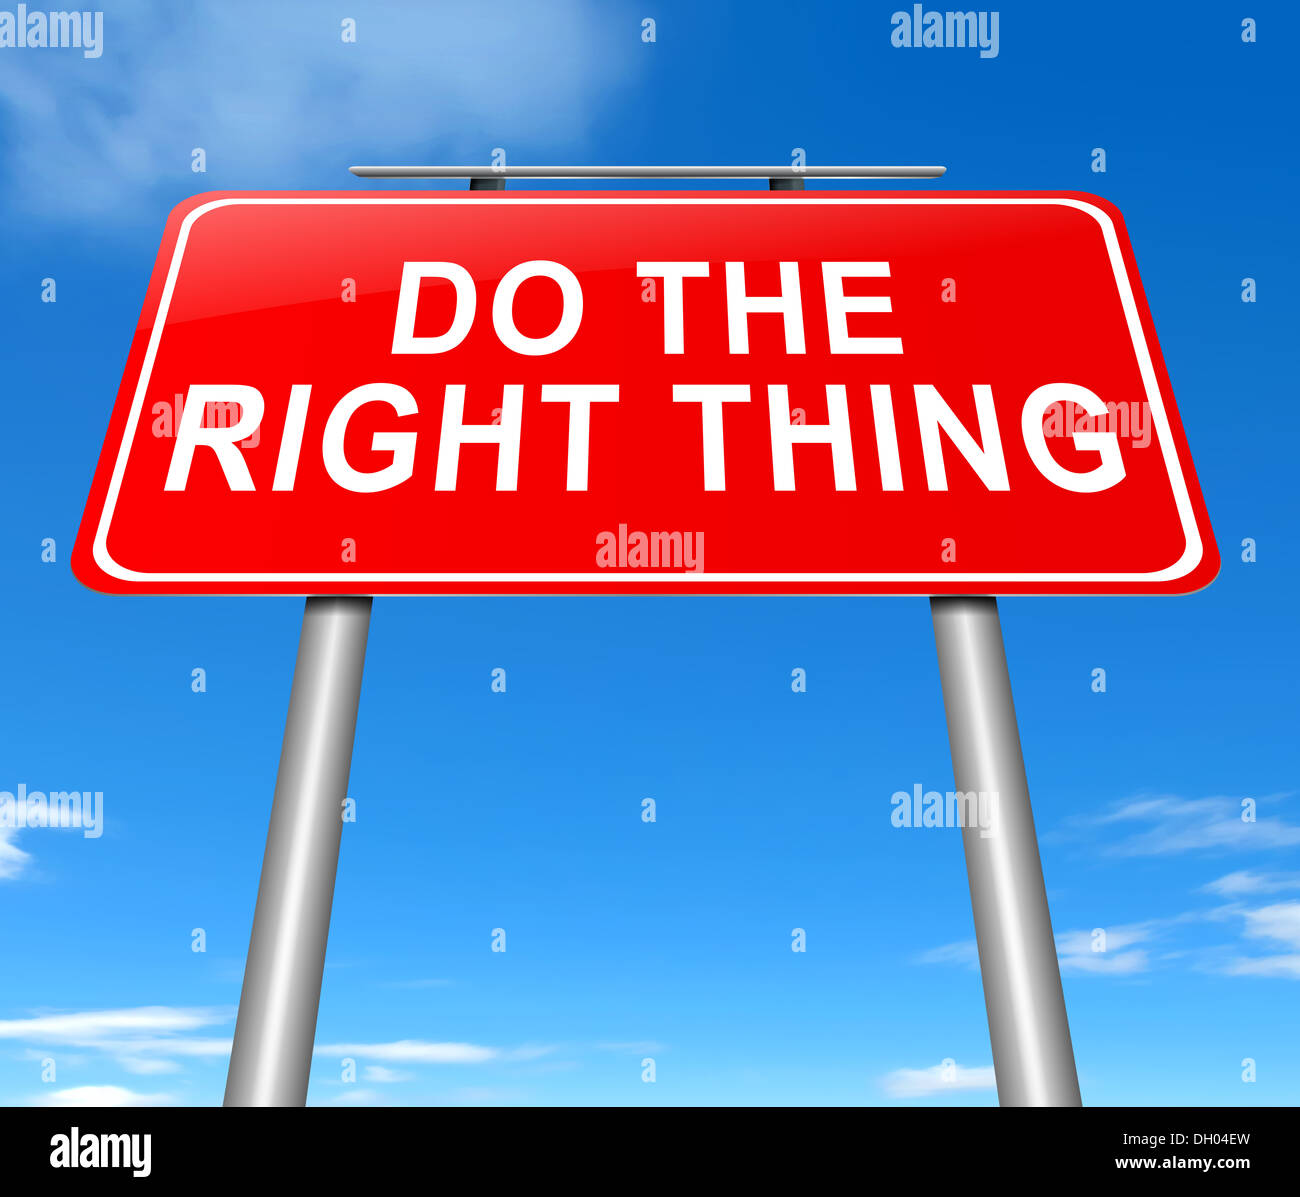 Do The Right Thing Concept Stock Photo Royalty Free Image